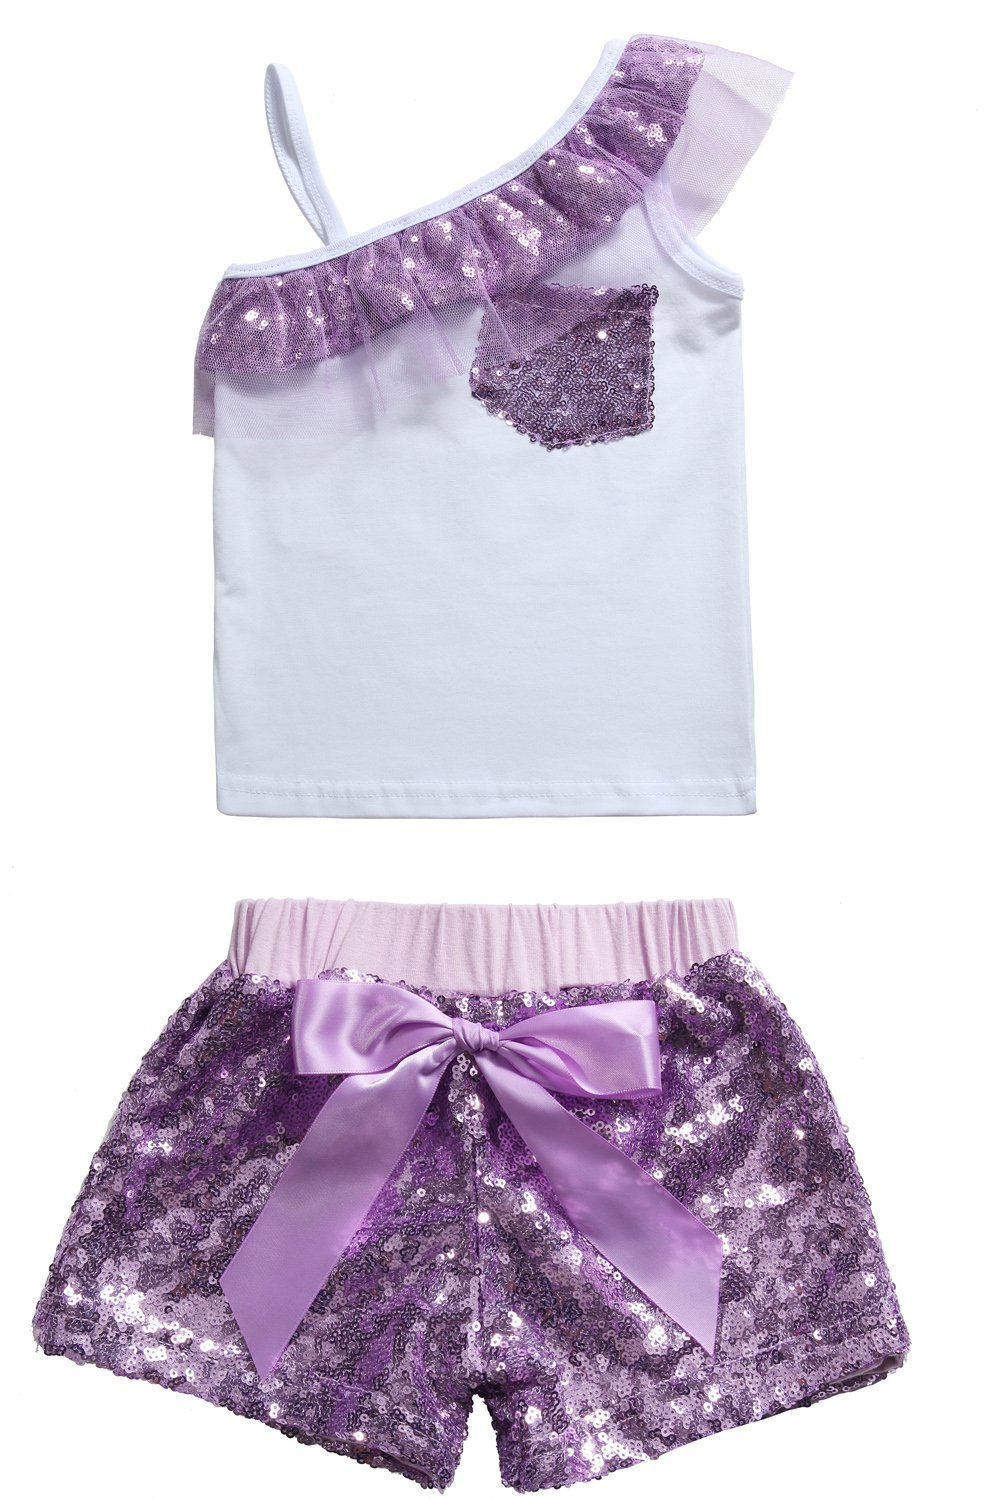 7d55fcc05 Cilucu Girls Shorts Toddler Sequin Shorts Sparkles on Both Sides Purple 6T  < Clothing < Clothing, Shoes & Jewelry - tibs